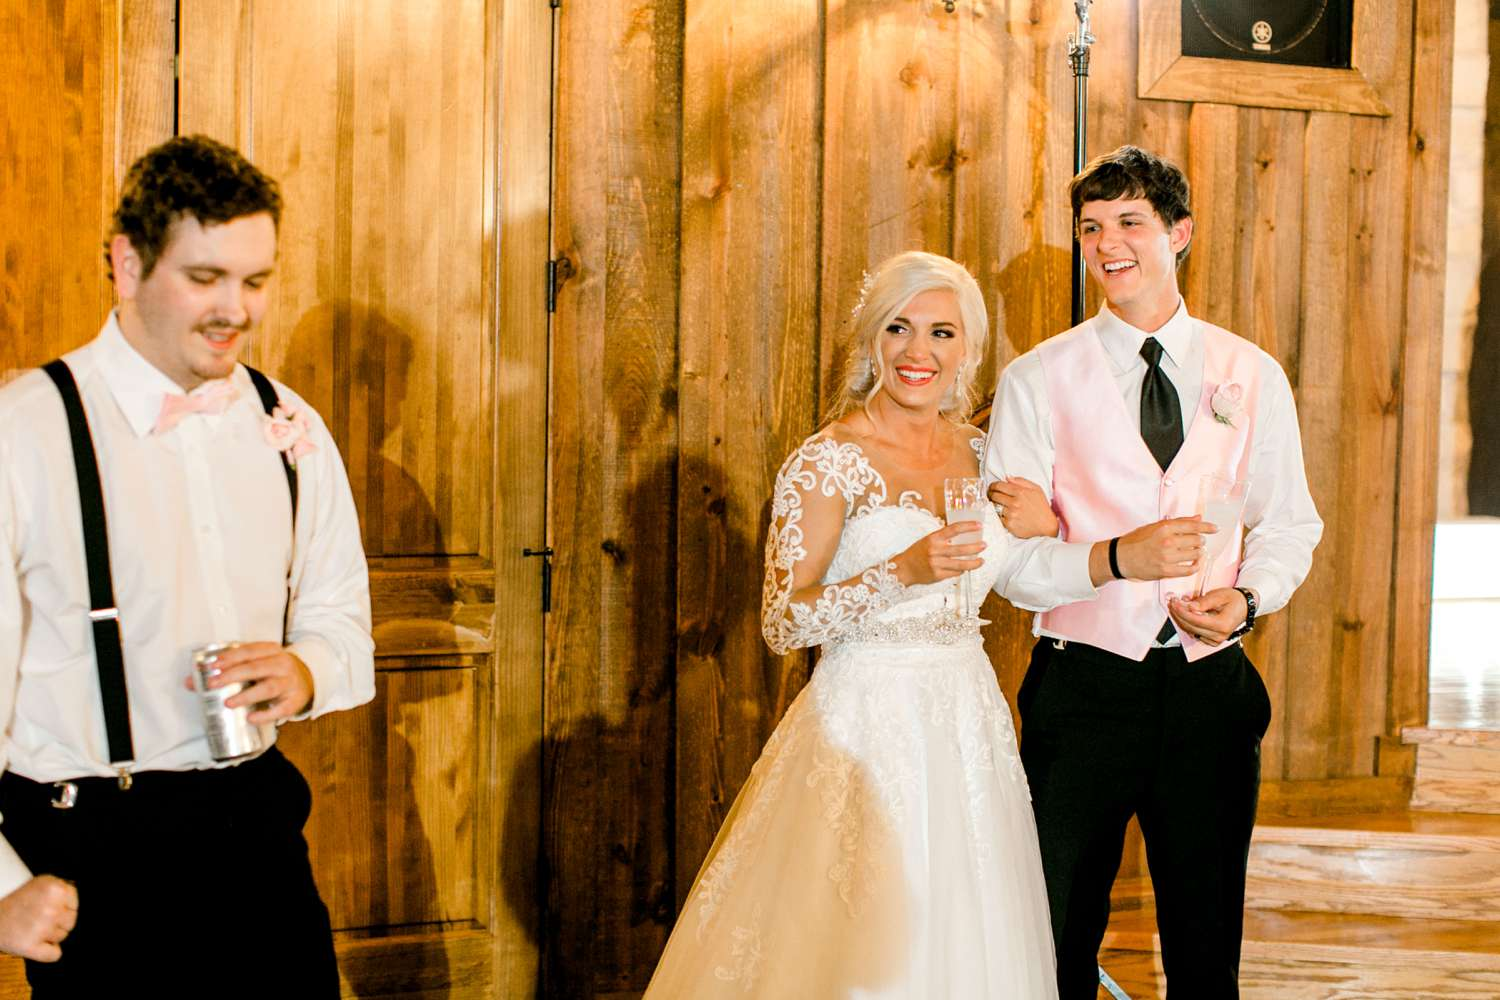 JESSICA+LYLE+NEEL+THE_SPRINGS_EVENTS_WEDDING_OKLAHOMA_ALLEEJ_PHOTOGRAPHER_0146.jpg